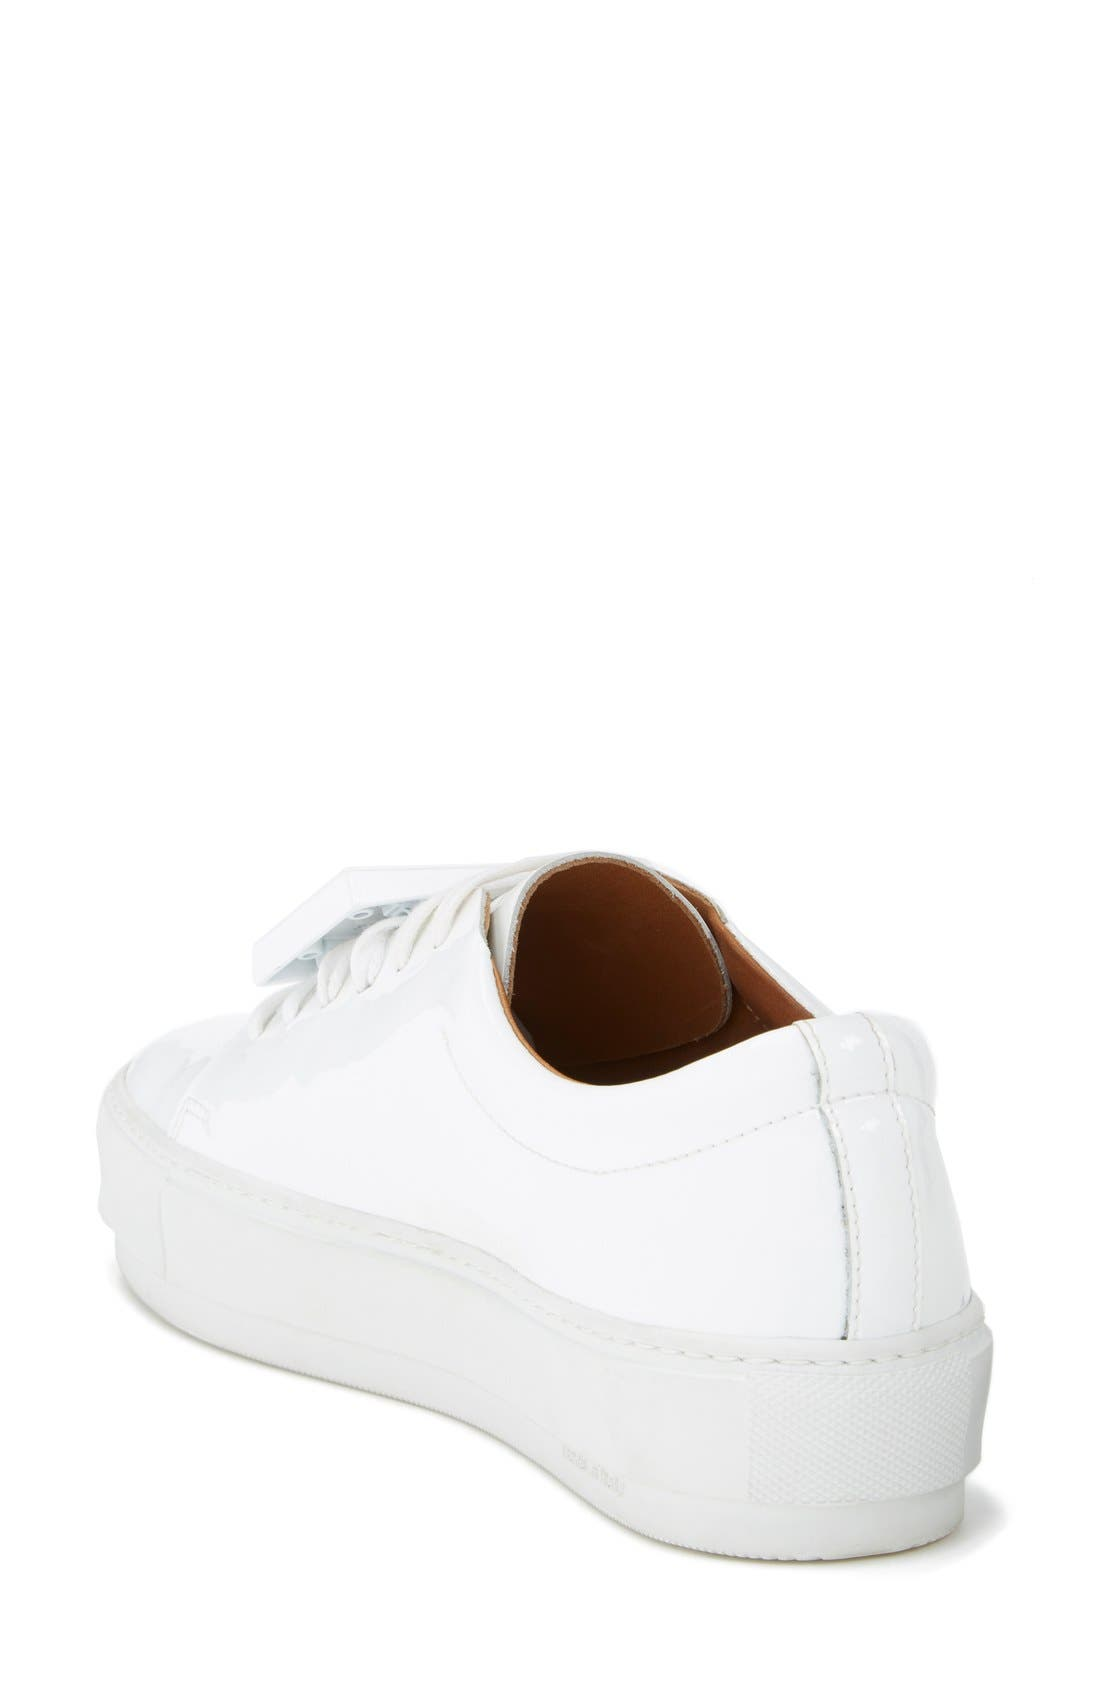 Adriana Leather Sneaker,                             Alternate thumbnail 2, color,